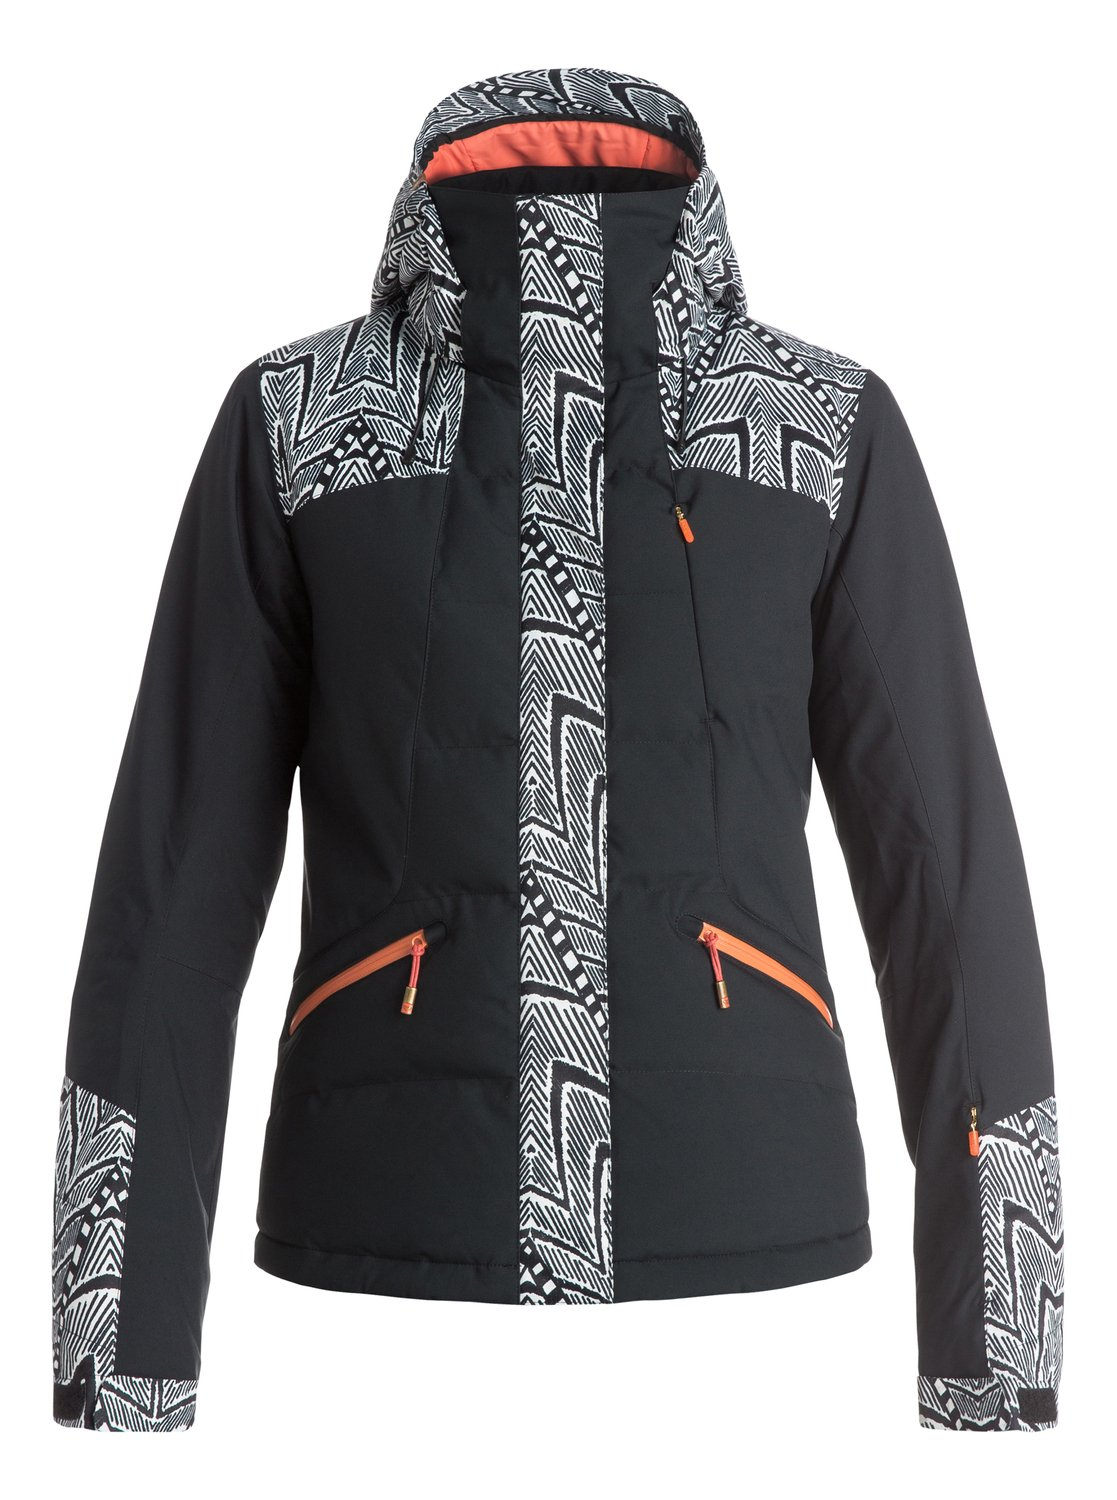 Сноубордическая куртка FlickerThe form-fitting and flattering slim cut Flicker snow jacket for women seamlessly blends style and high performance, crafted with 15K ROXY DryFlight® technology for serious waterproofing in serious conditions. The hooded design mixes PrimaLoft® Gold Insulation Luxe for compressible down-like high loft, high performance insulation in the quilted sections, while PrimaLoft® Black Eco offers non-quilted insulation for a more low-profile warmth where you need manoeuvrability. Fully-taped seams, breathable taffeta lining with soft tricot panels and a host of tech features let you charge the whole mountain to your hearts content. Includes a ROXY X Biotherm® Enjoy &amp;amp; Care moisturising neck warmer that cares for your skin.<br>